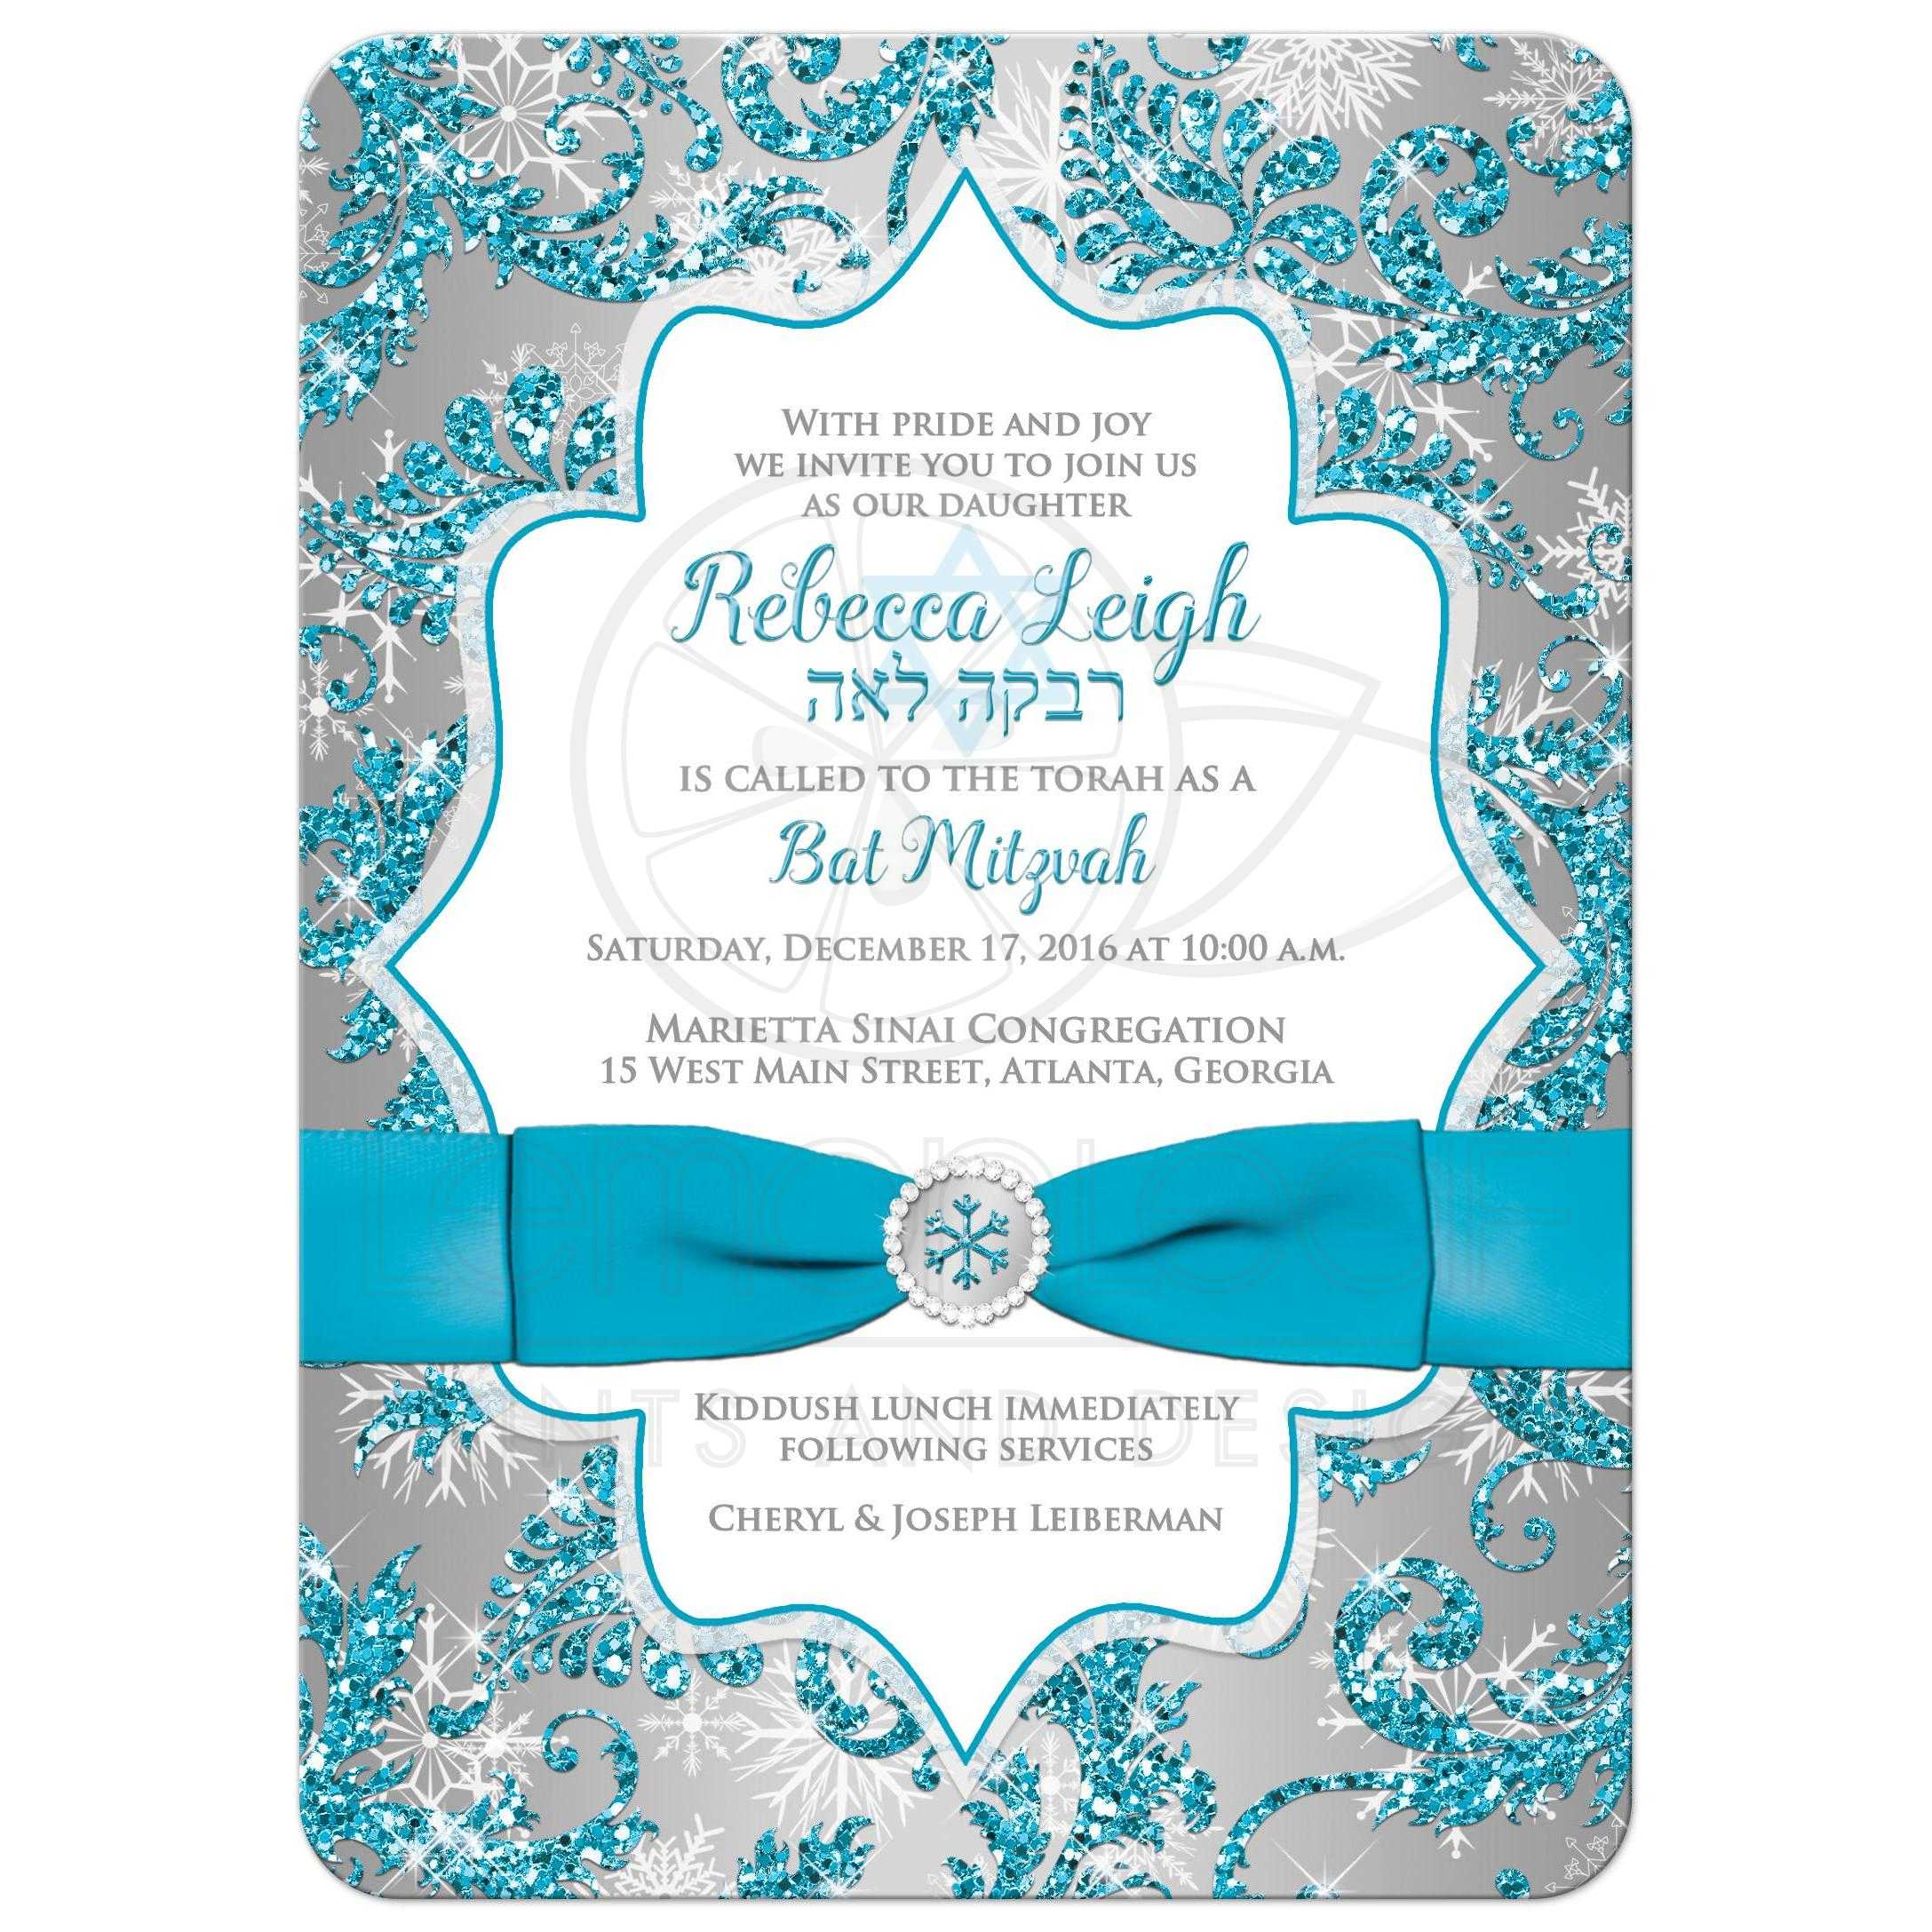 ... Great Turquoise Blue, Silver, And White Snowflakes And Glitter Damask  Pattern Bat Mitzvah Party ...